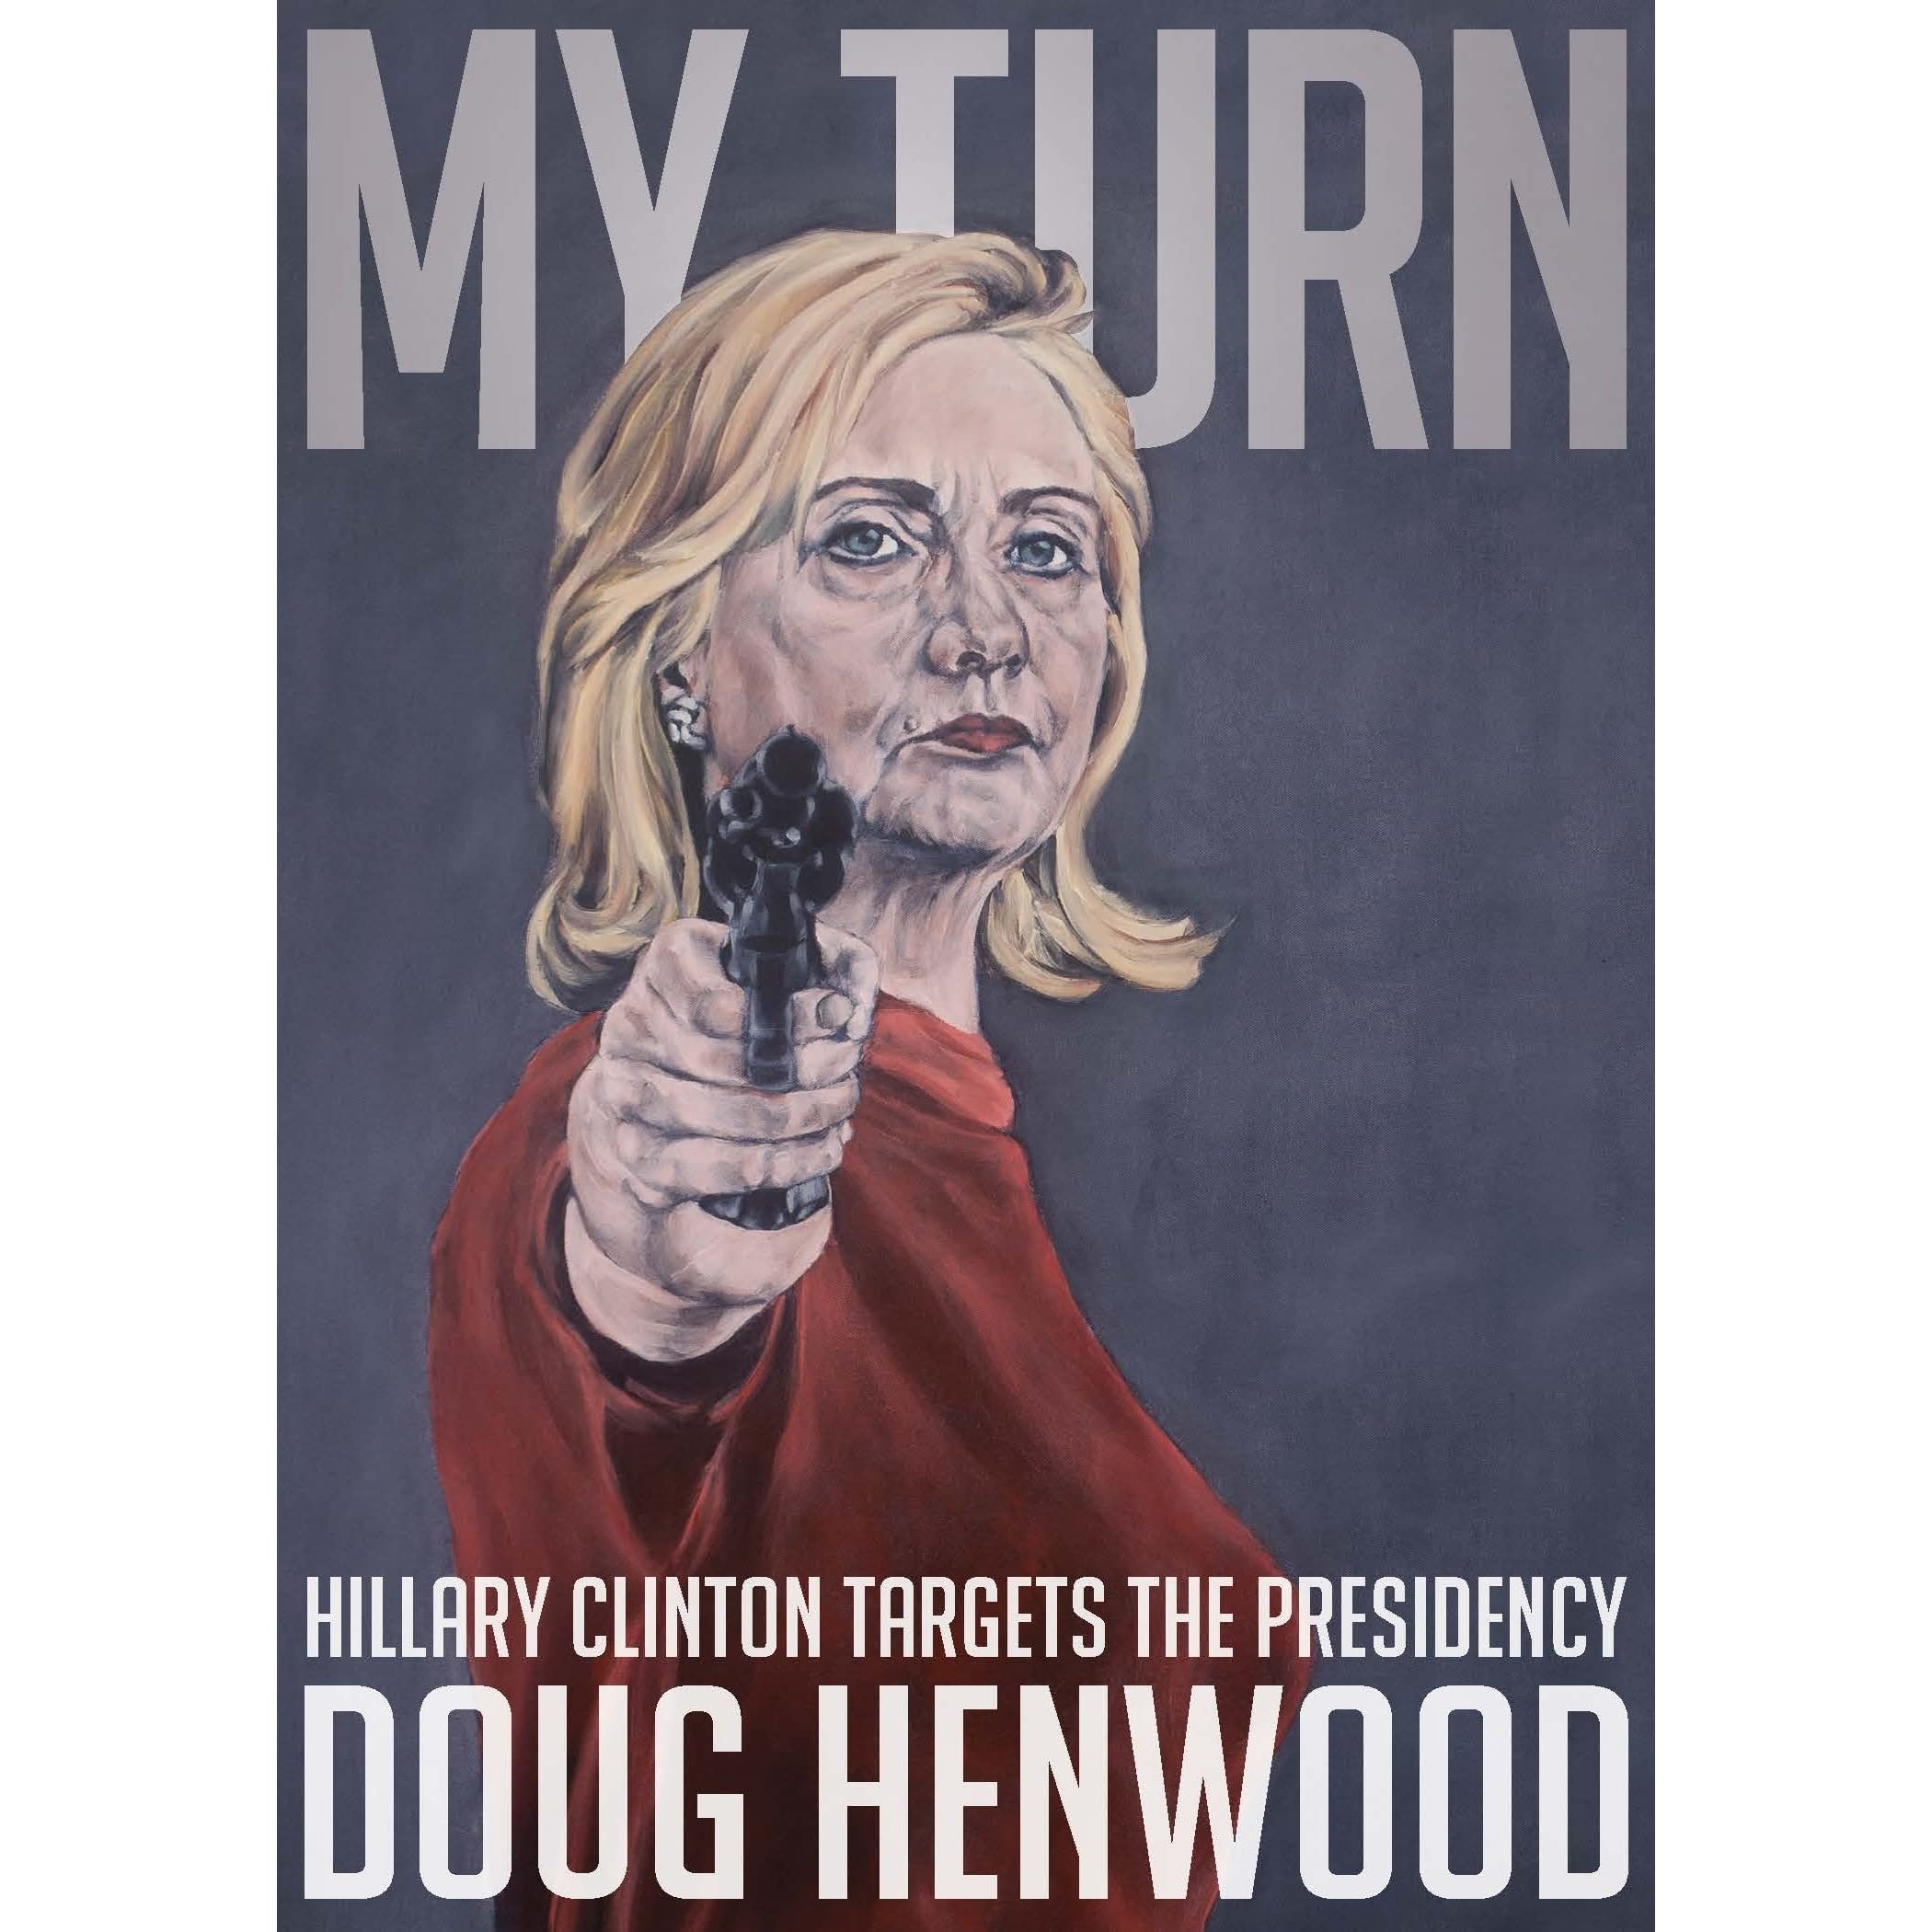 my turn hillary clinton targets the presidency by doug henwood my turn hillary clinton targets the presidency by doug henwood reviews discussion bookclubs lists